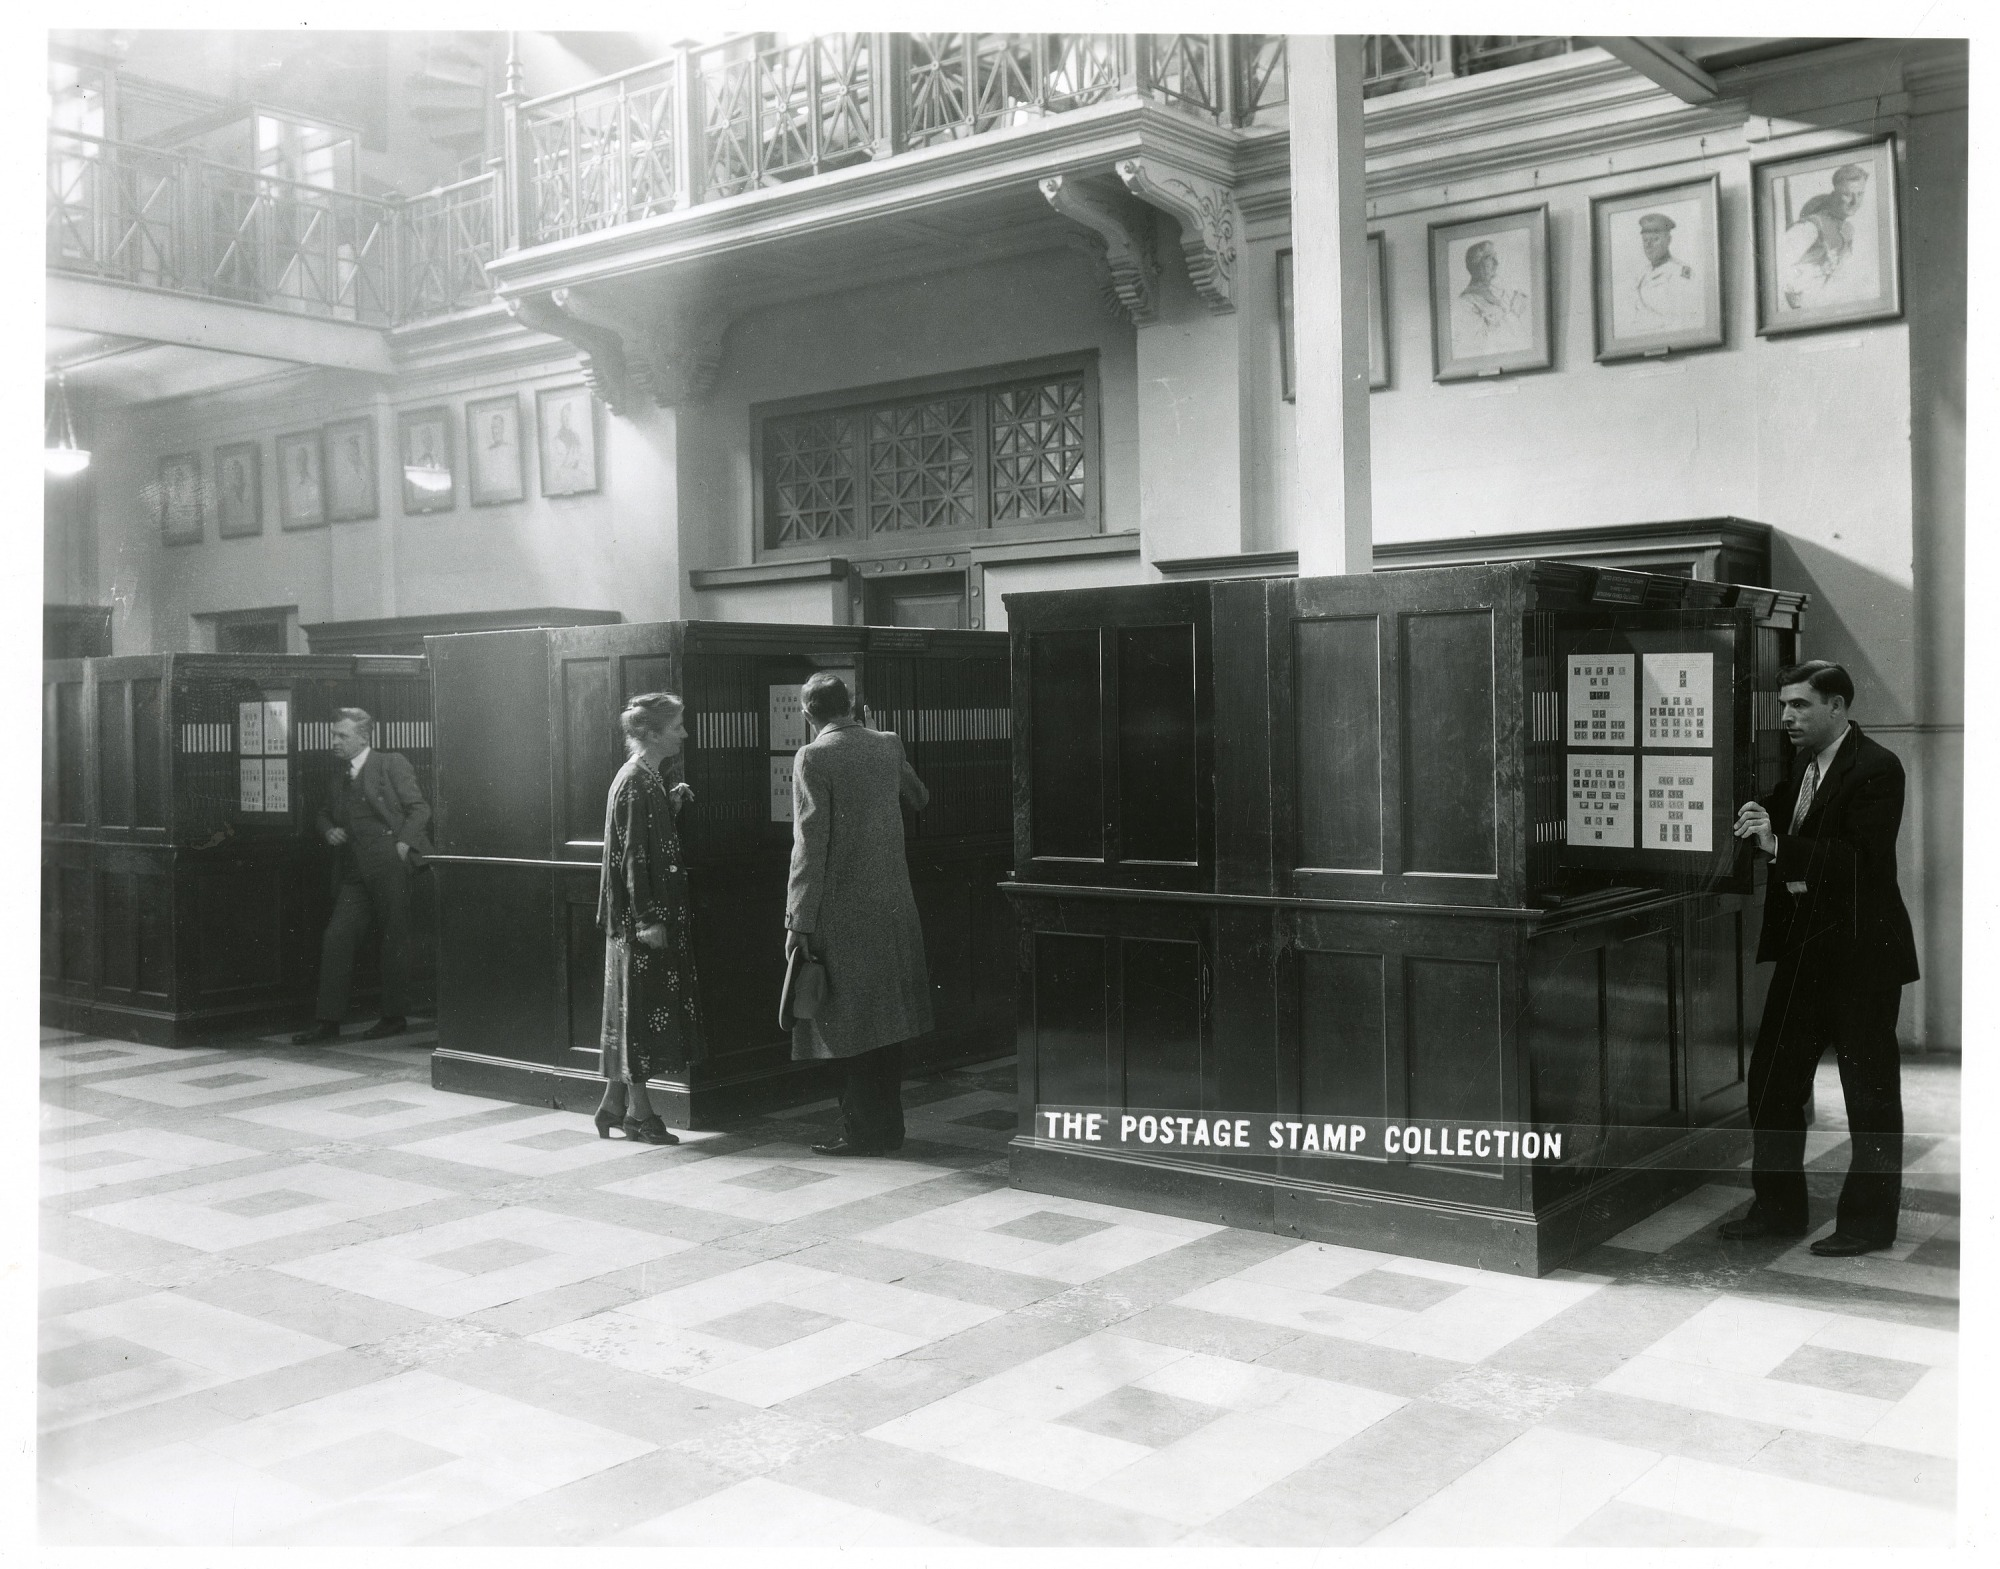 Postage Stamp Collection in A&I Bldg, by Unknown, 1920s, Smithsonian Archives - History Div, SIA2010-2544 or 11064A or MAH-11064A.